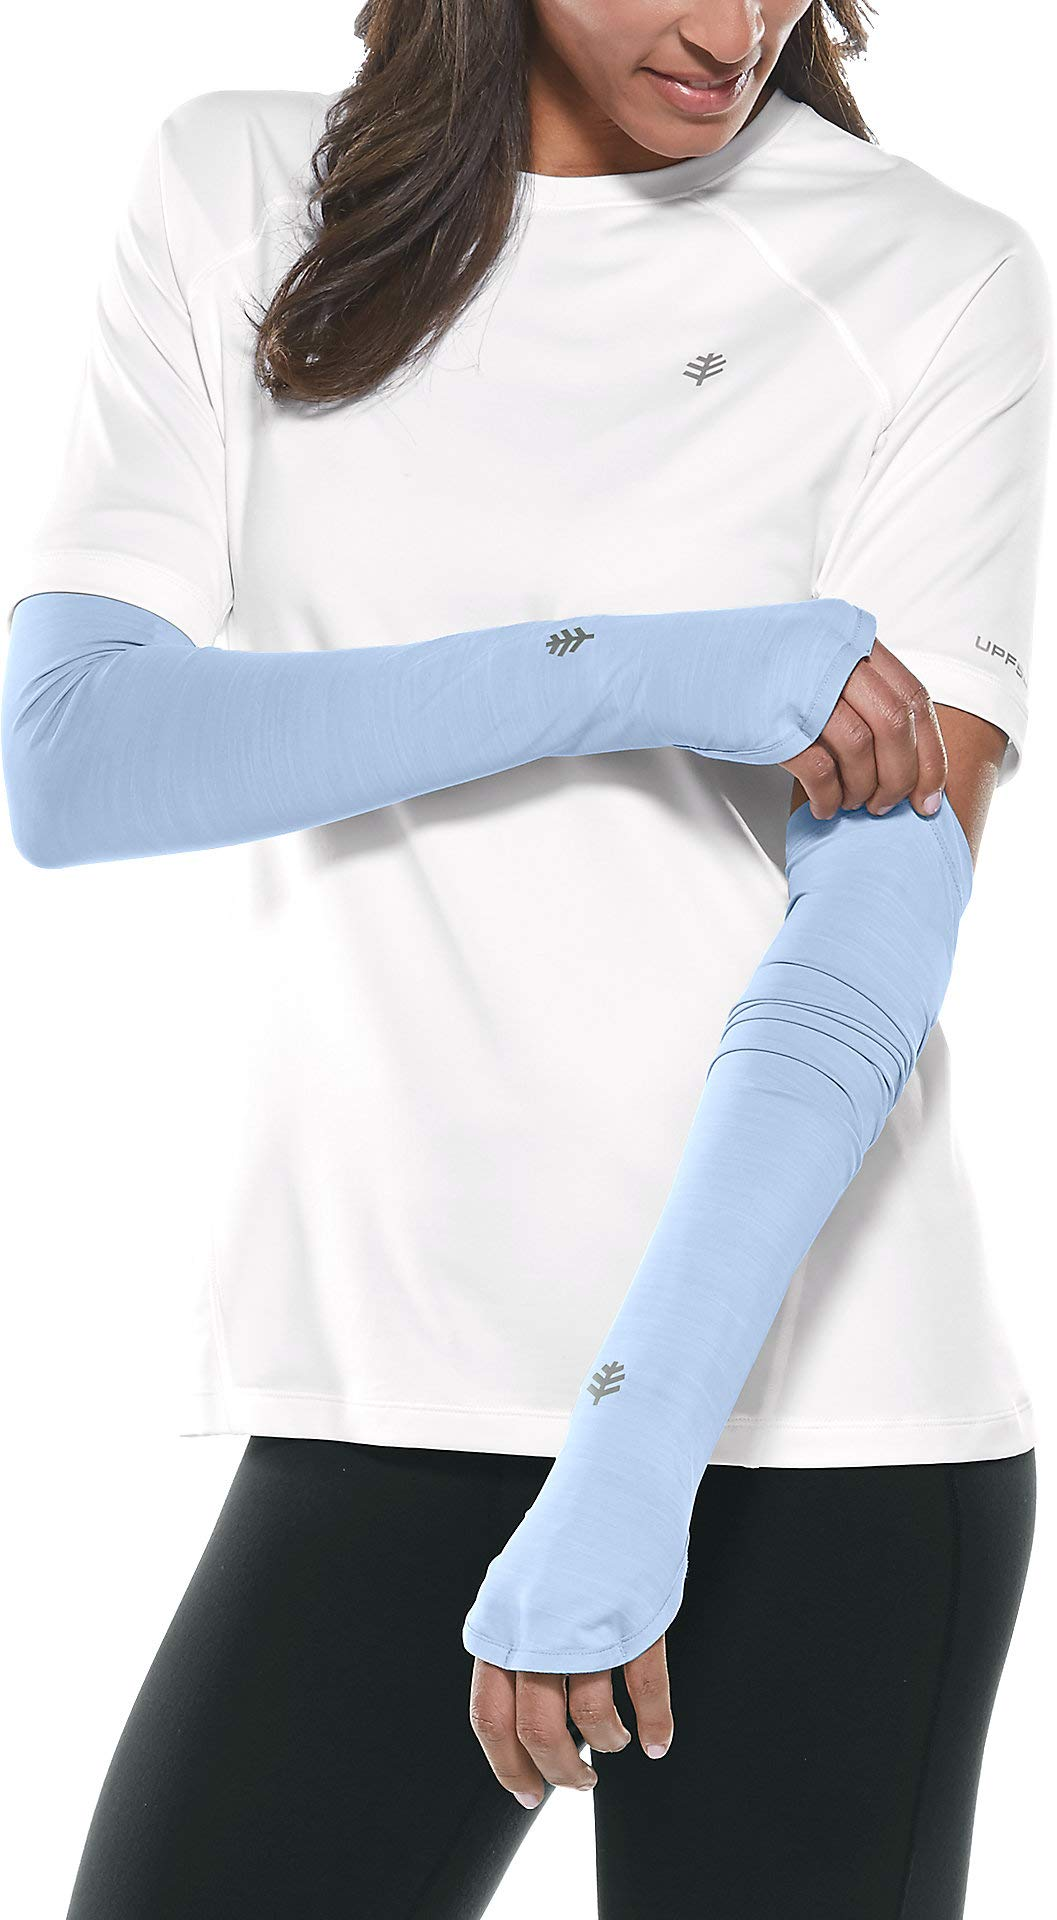 Coolibar UPF 50+ Women's Performance Sleeves - Sun Protective (Large/X-Large- Vintage Blue) by Coolibar